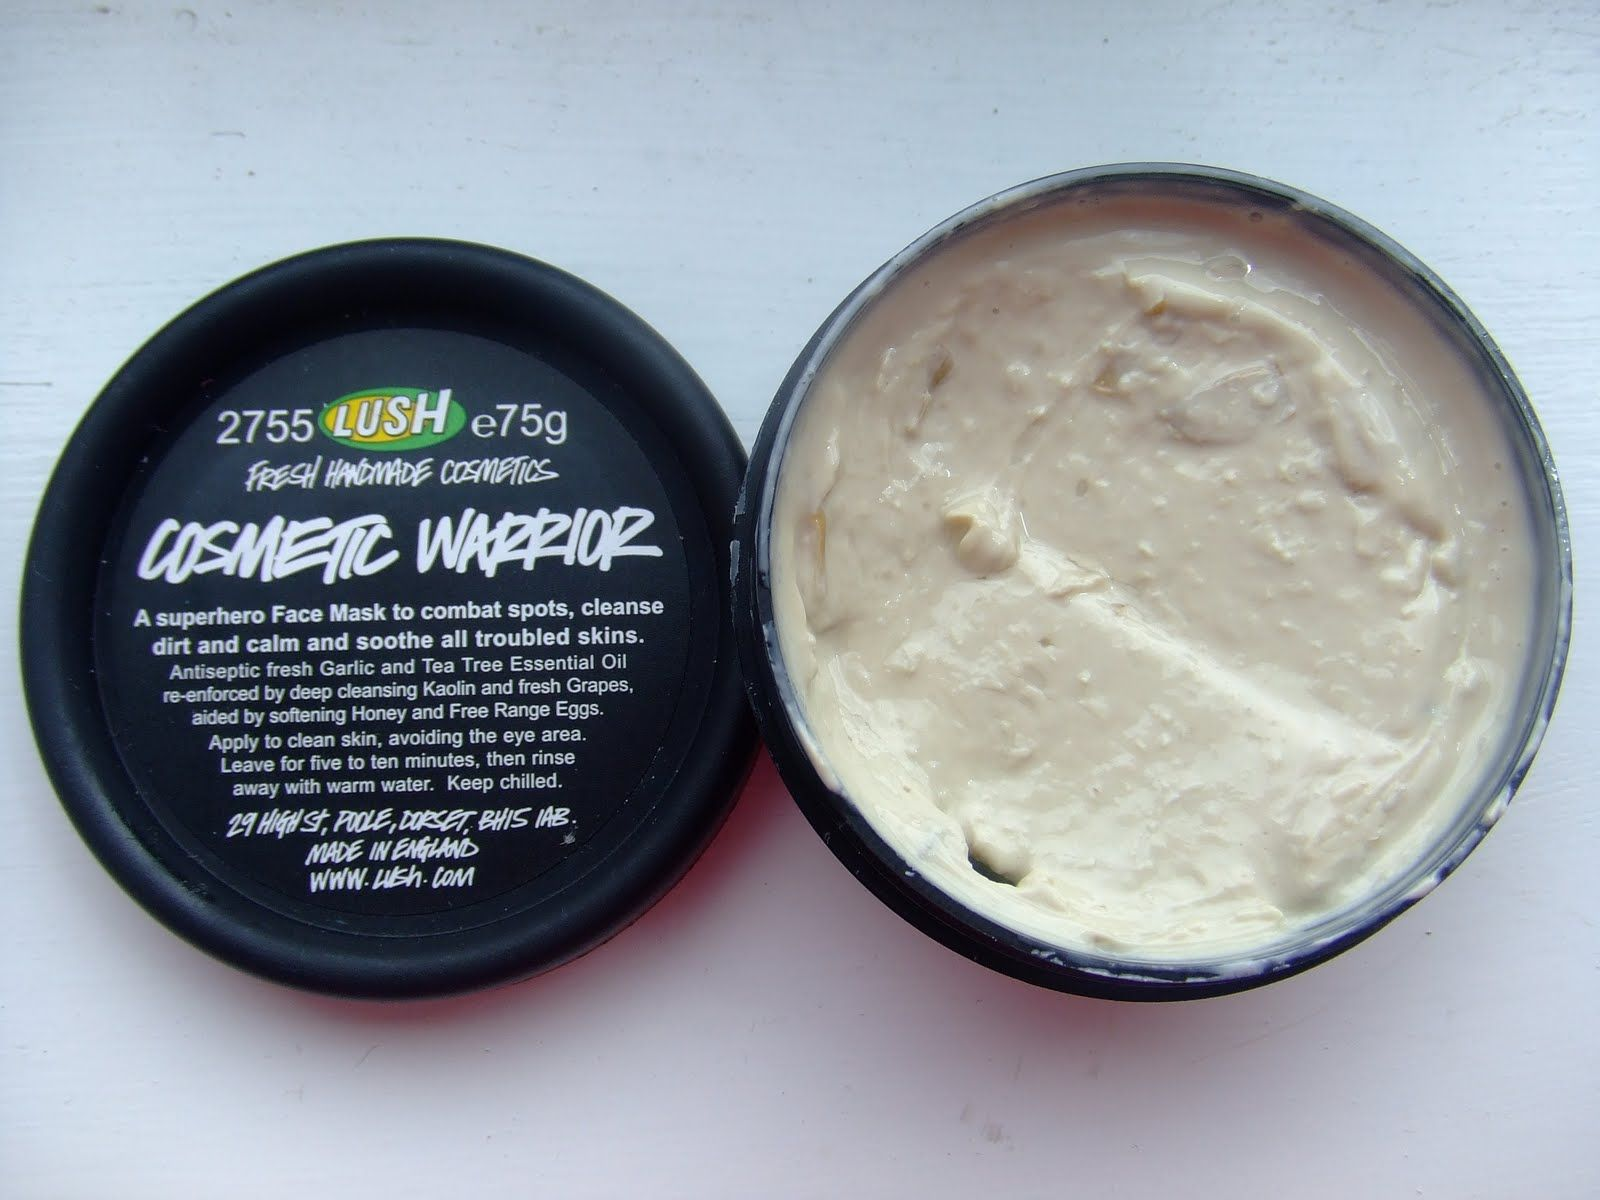 Cosmetic Warrior Face Mask From Lush Works Great On Acne Prone Skin And Doesn T Dry It Out Lush Cosmetic Warrior Cosmetic Warrior Lush Cosmetics